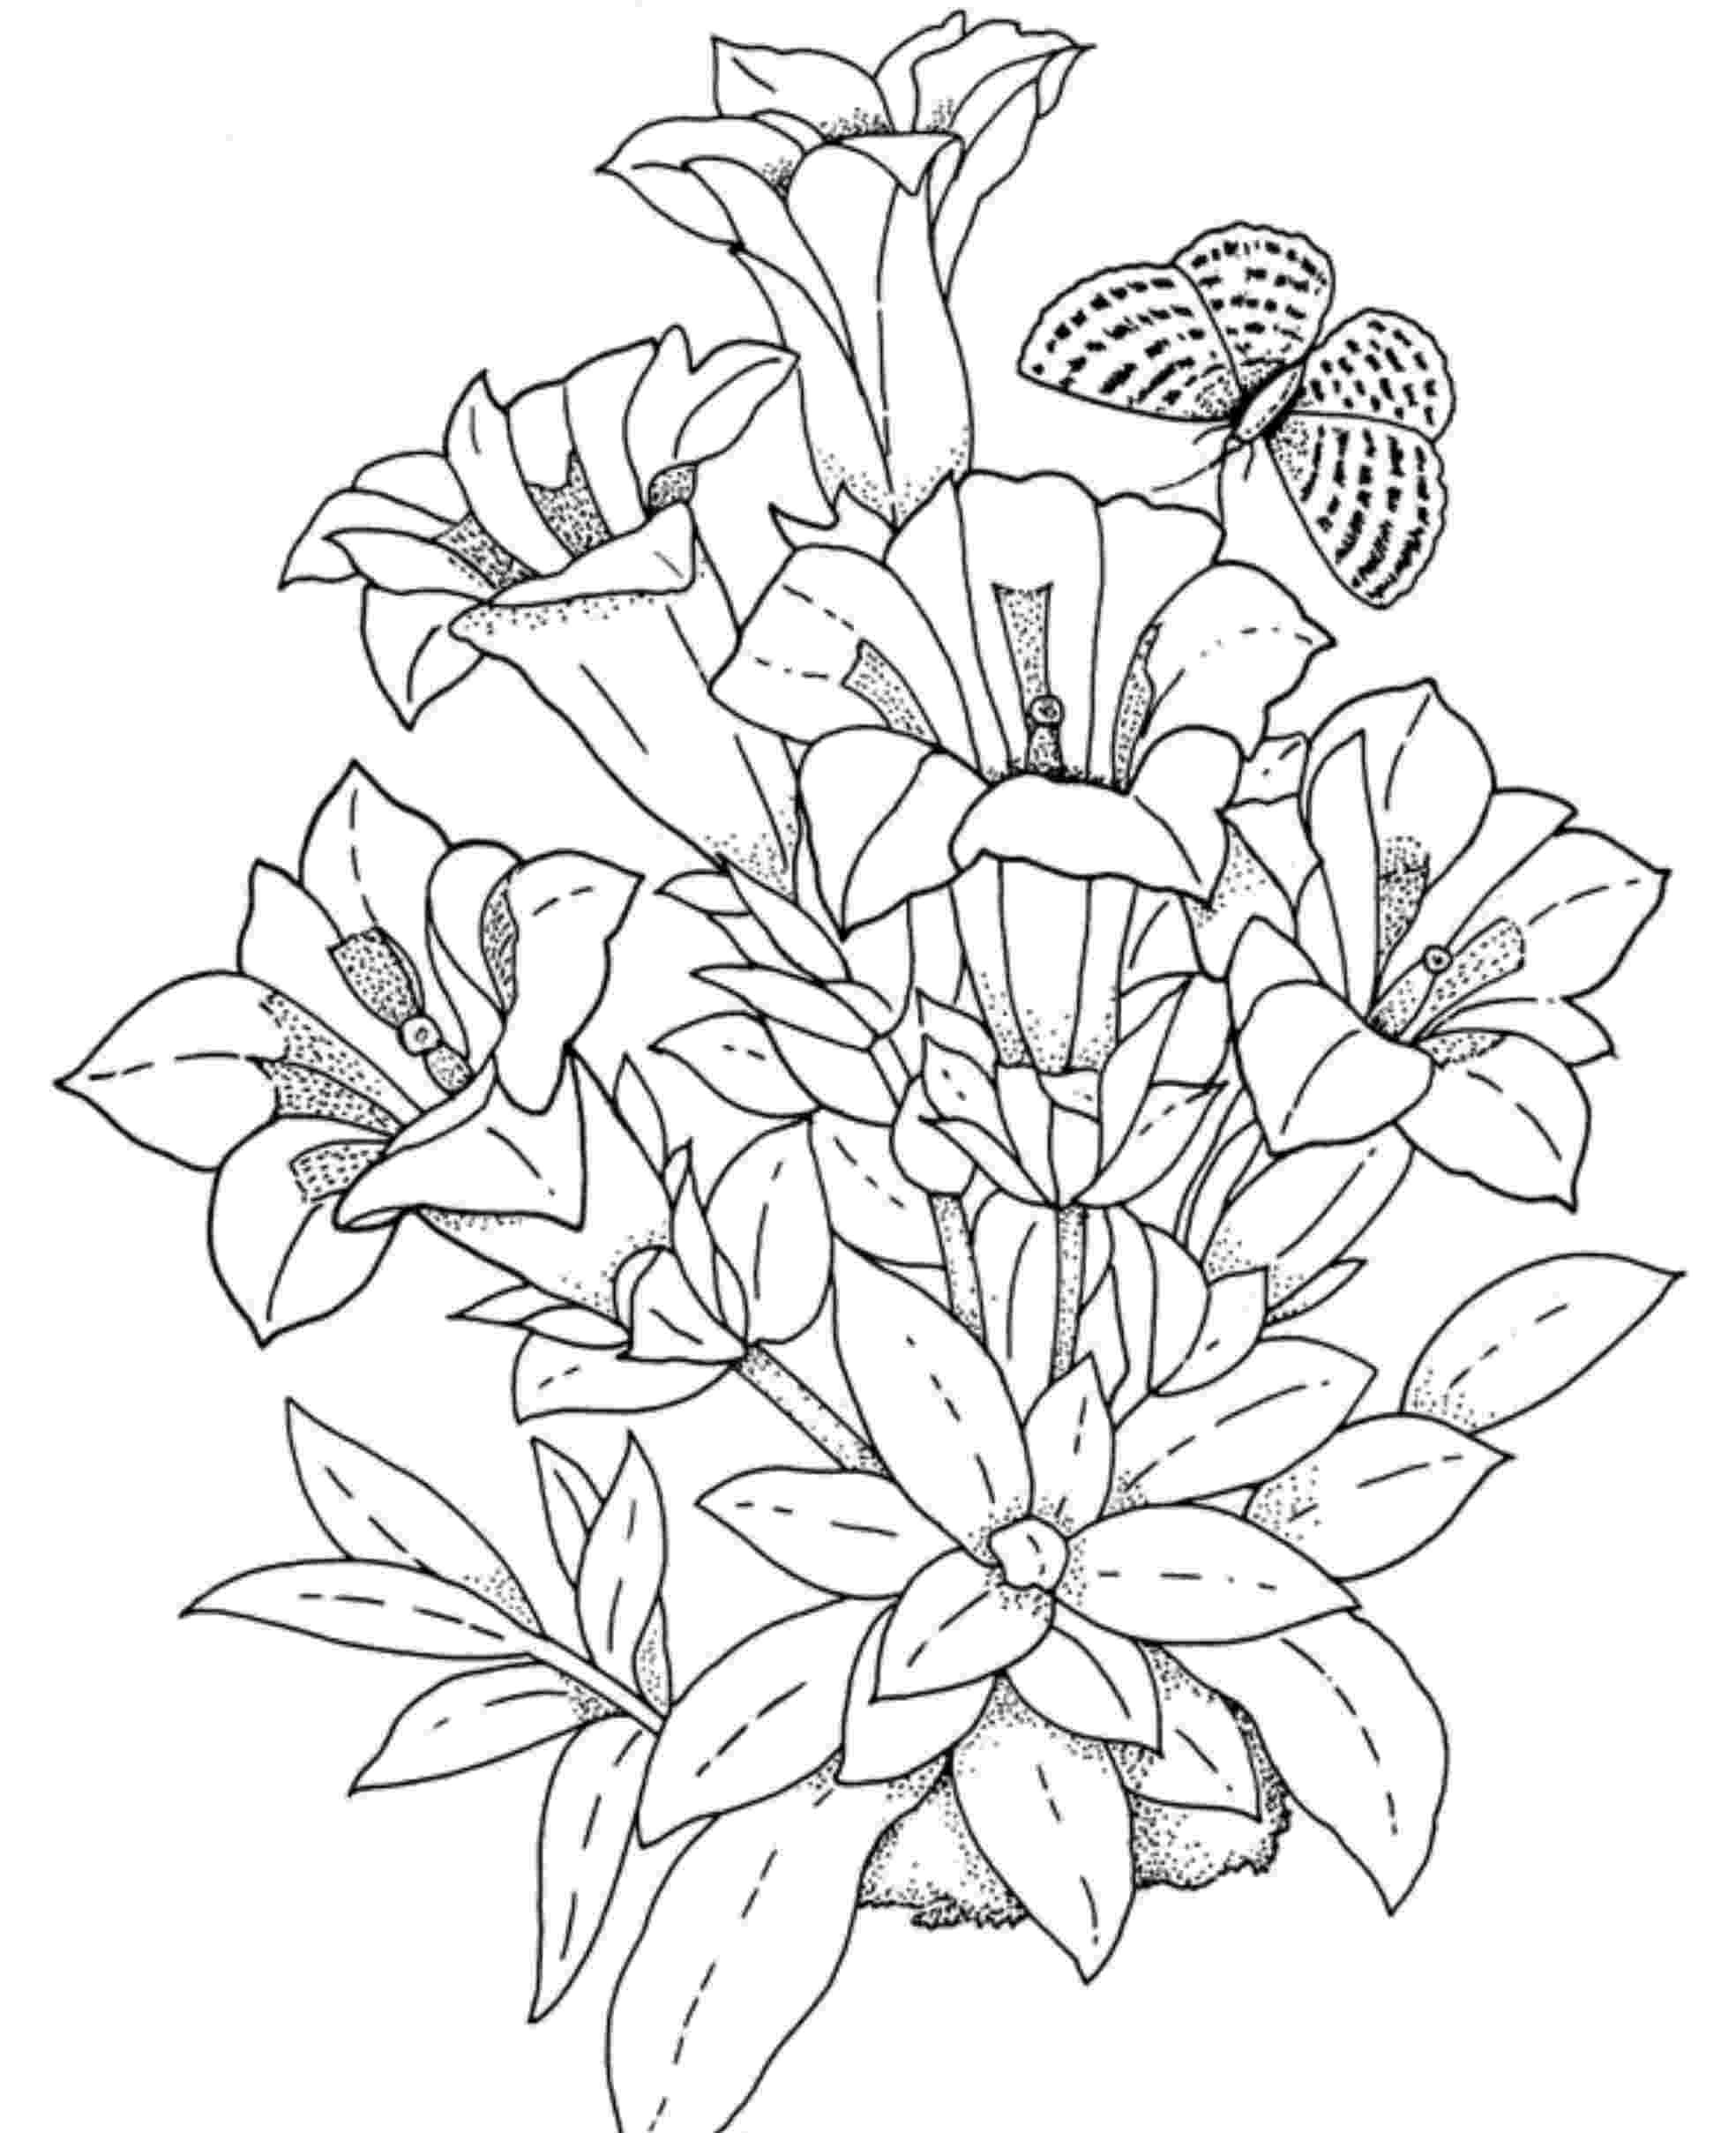 free printable flower coloring pages for adults free spring coloring pages for adults the country chic pages adults printable flower coloring for free